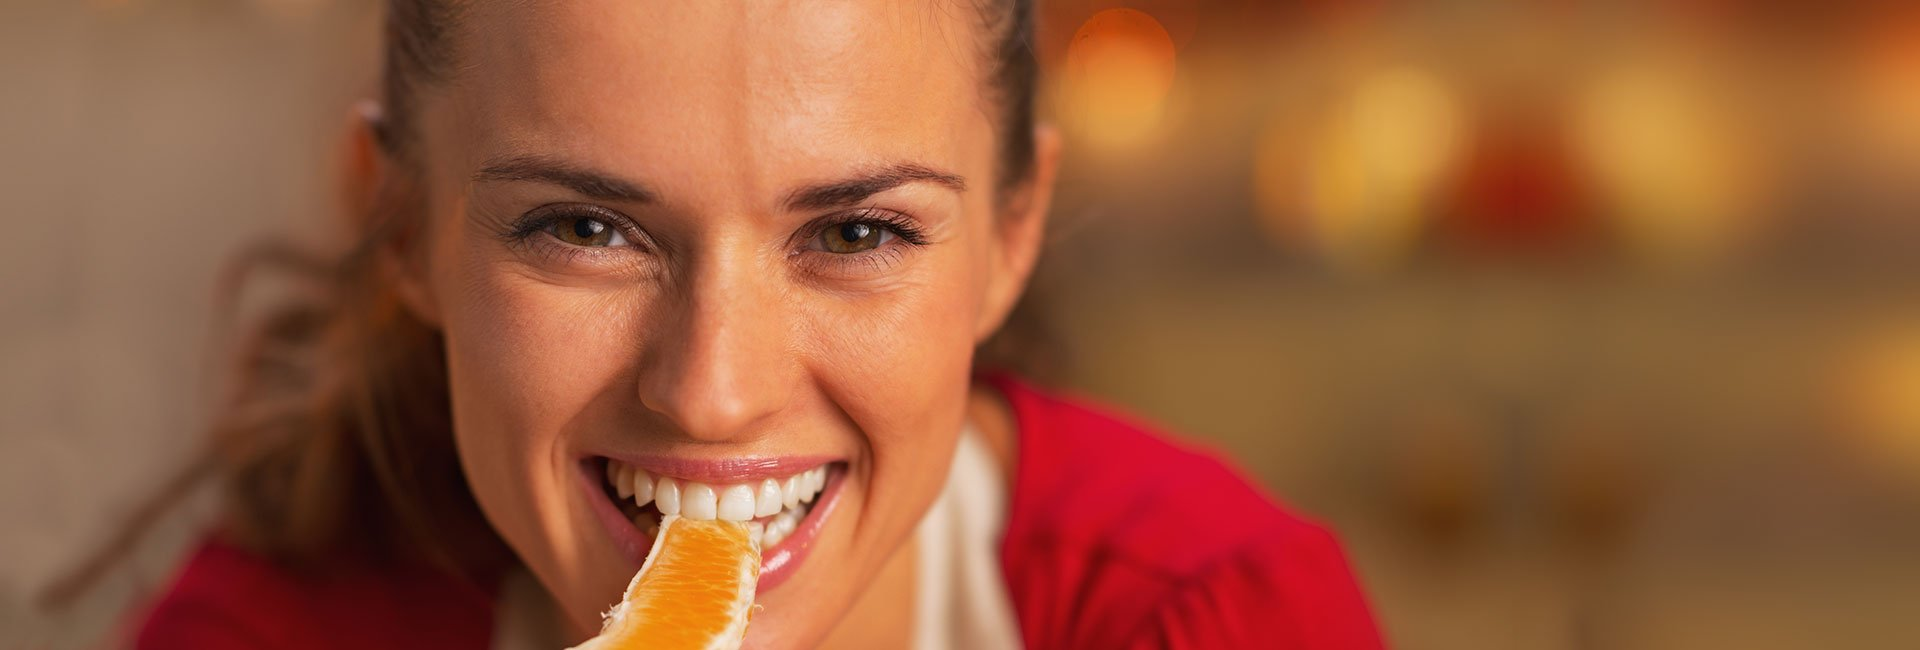 ARE YOU CONFIDENT THAT YOUR GUMS ARE HEALTHY?